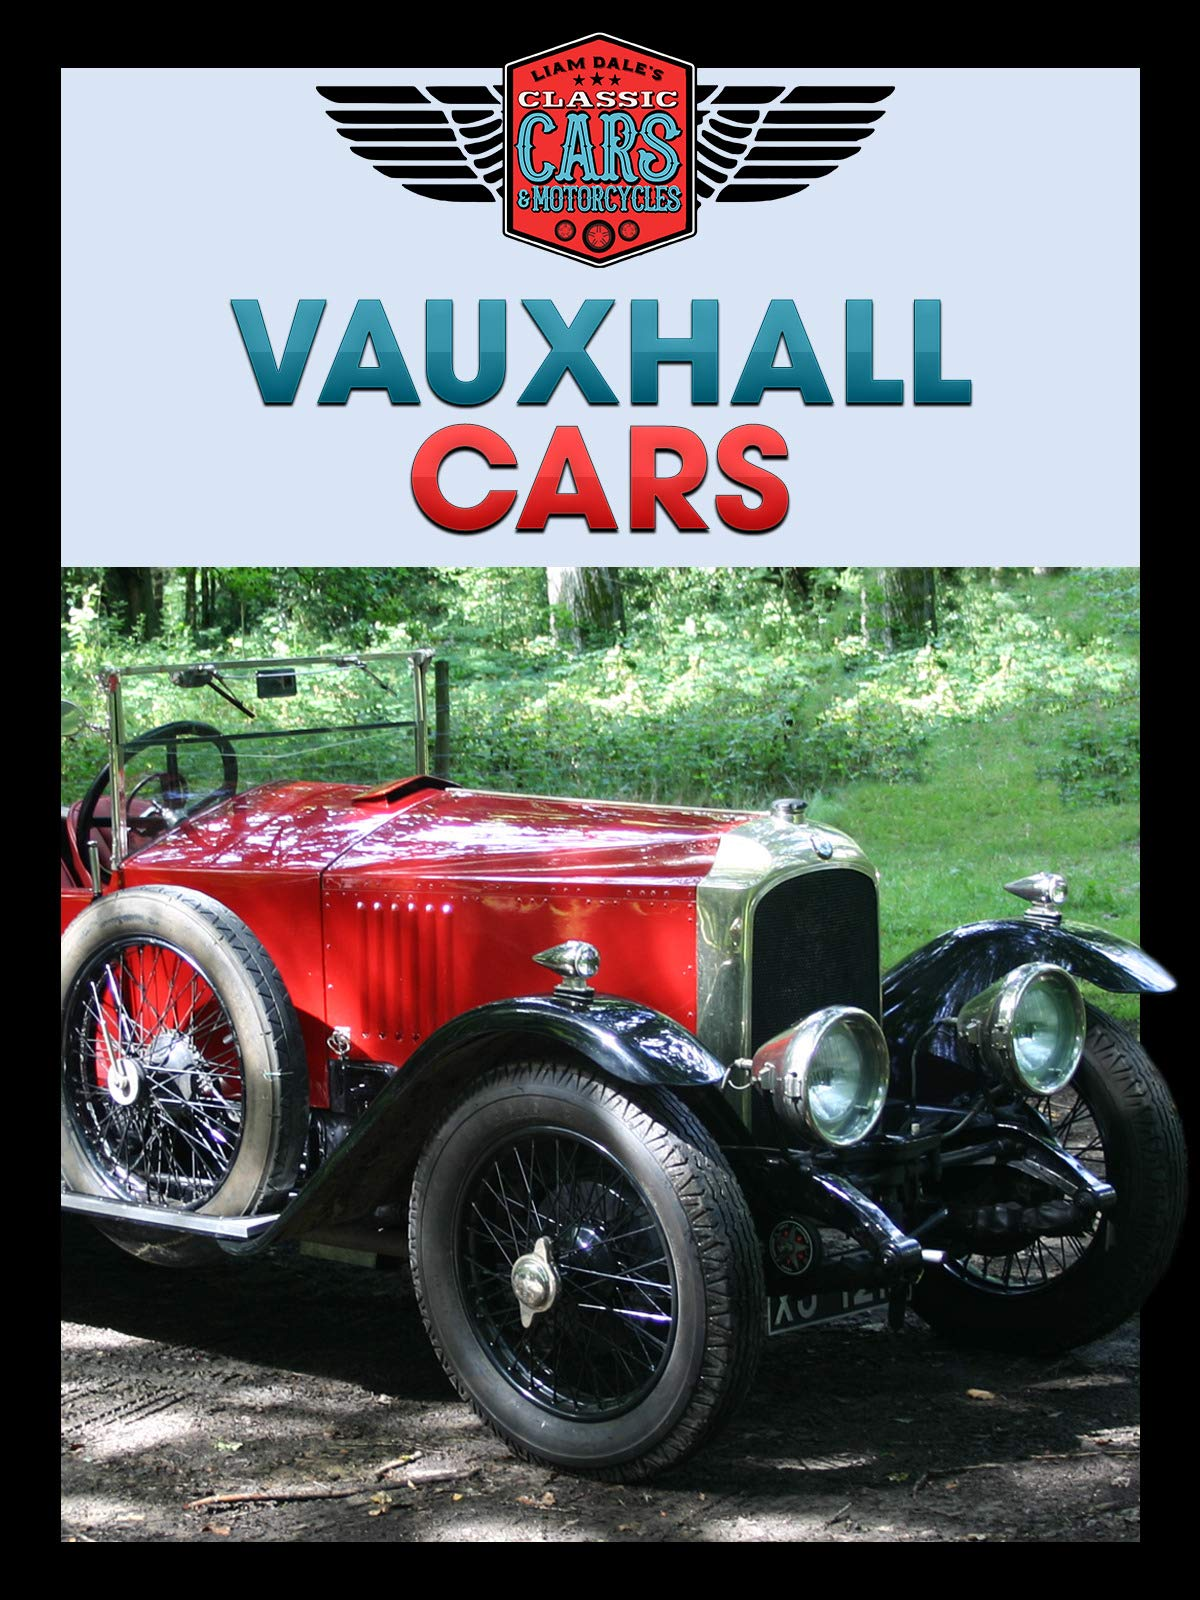 Vauxhall Cars: Liam's Dale's Classic Cars & Motorcycles